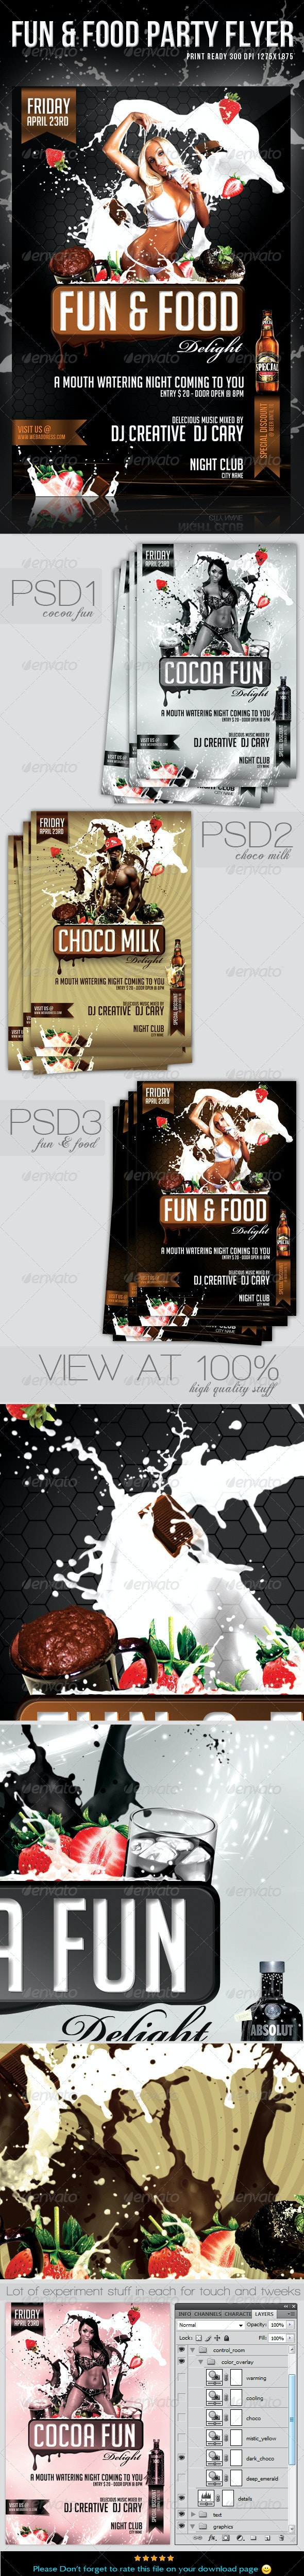 Fun & Food Party Flyer / Template - Flyers Print Templates